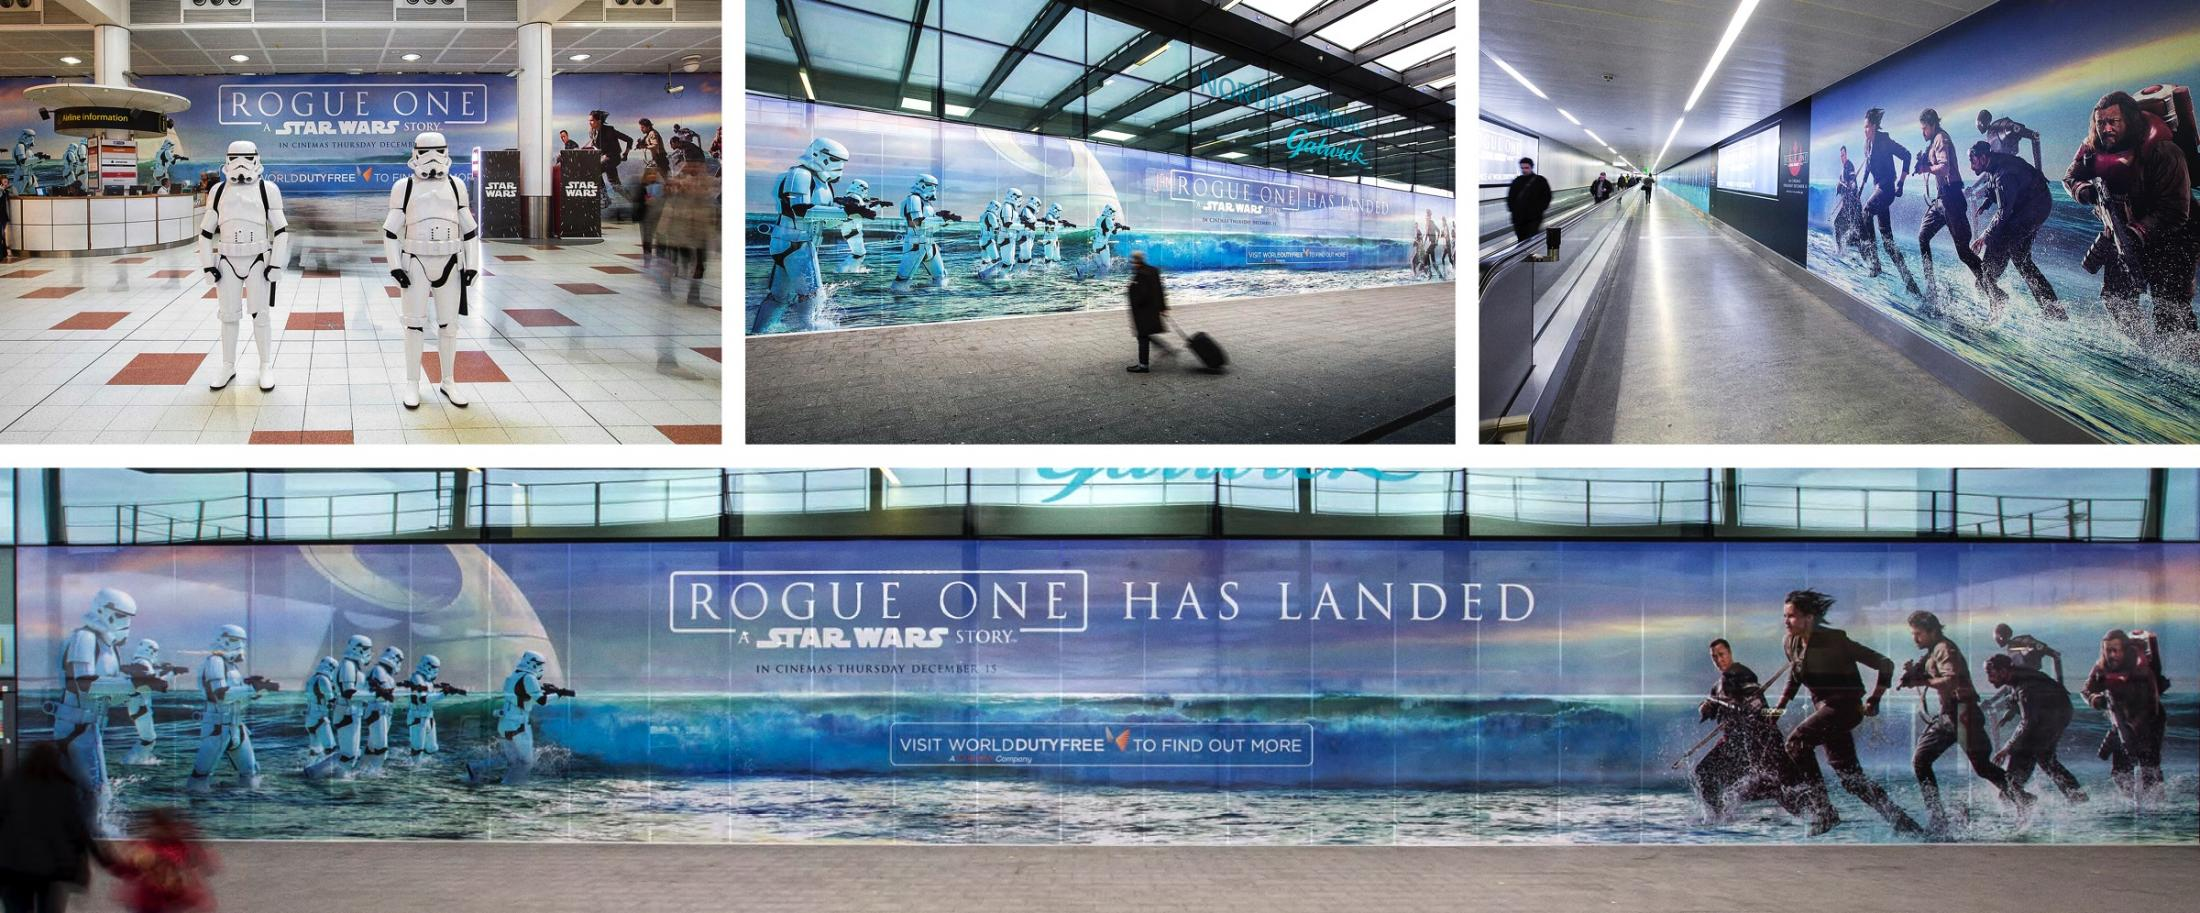 Walt Disney Studios: Rogue One: A Star Wars Story - Gatwick Airport Terminal Takeover